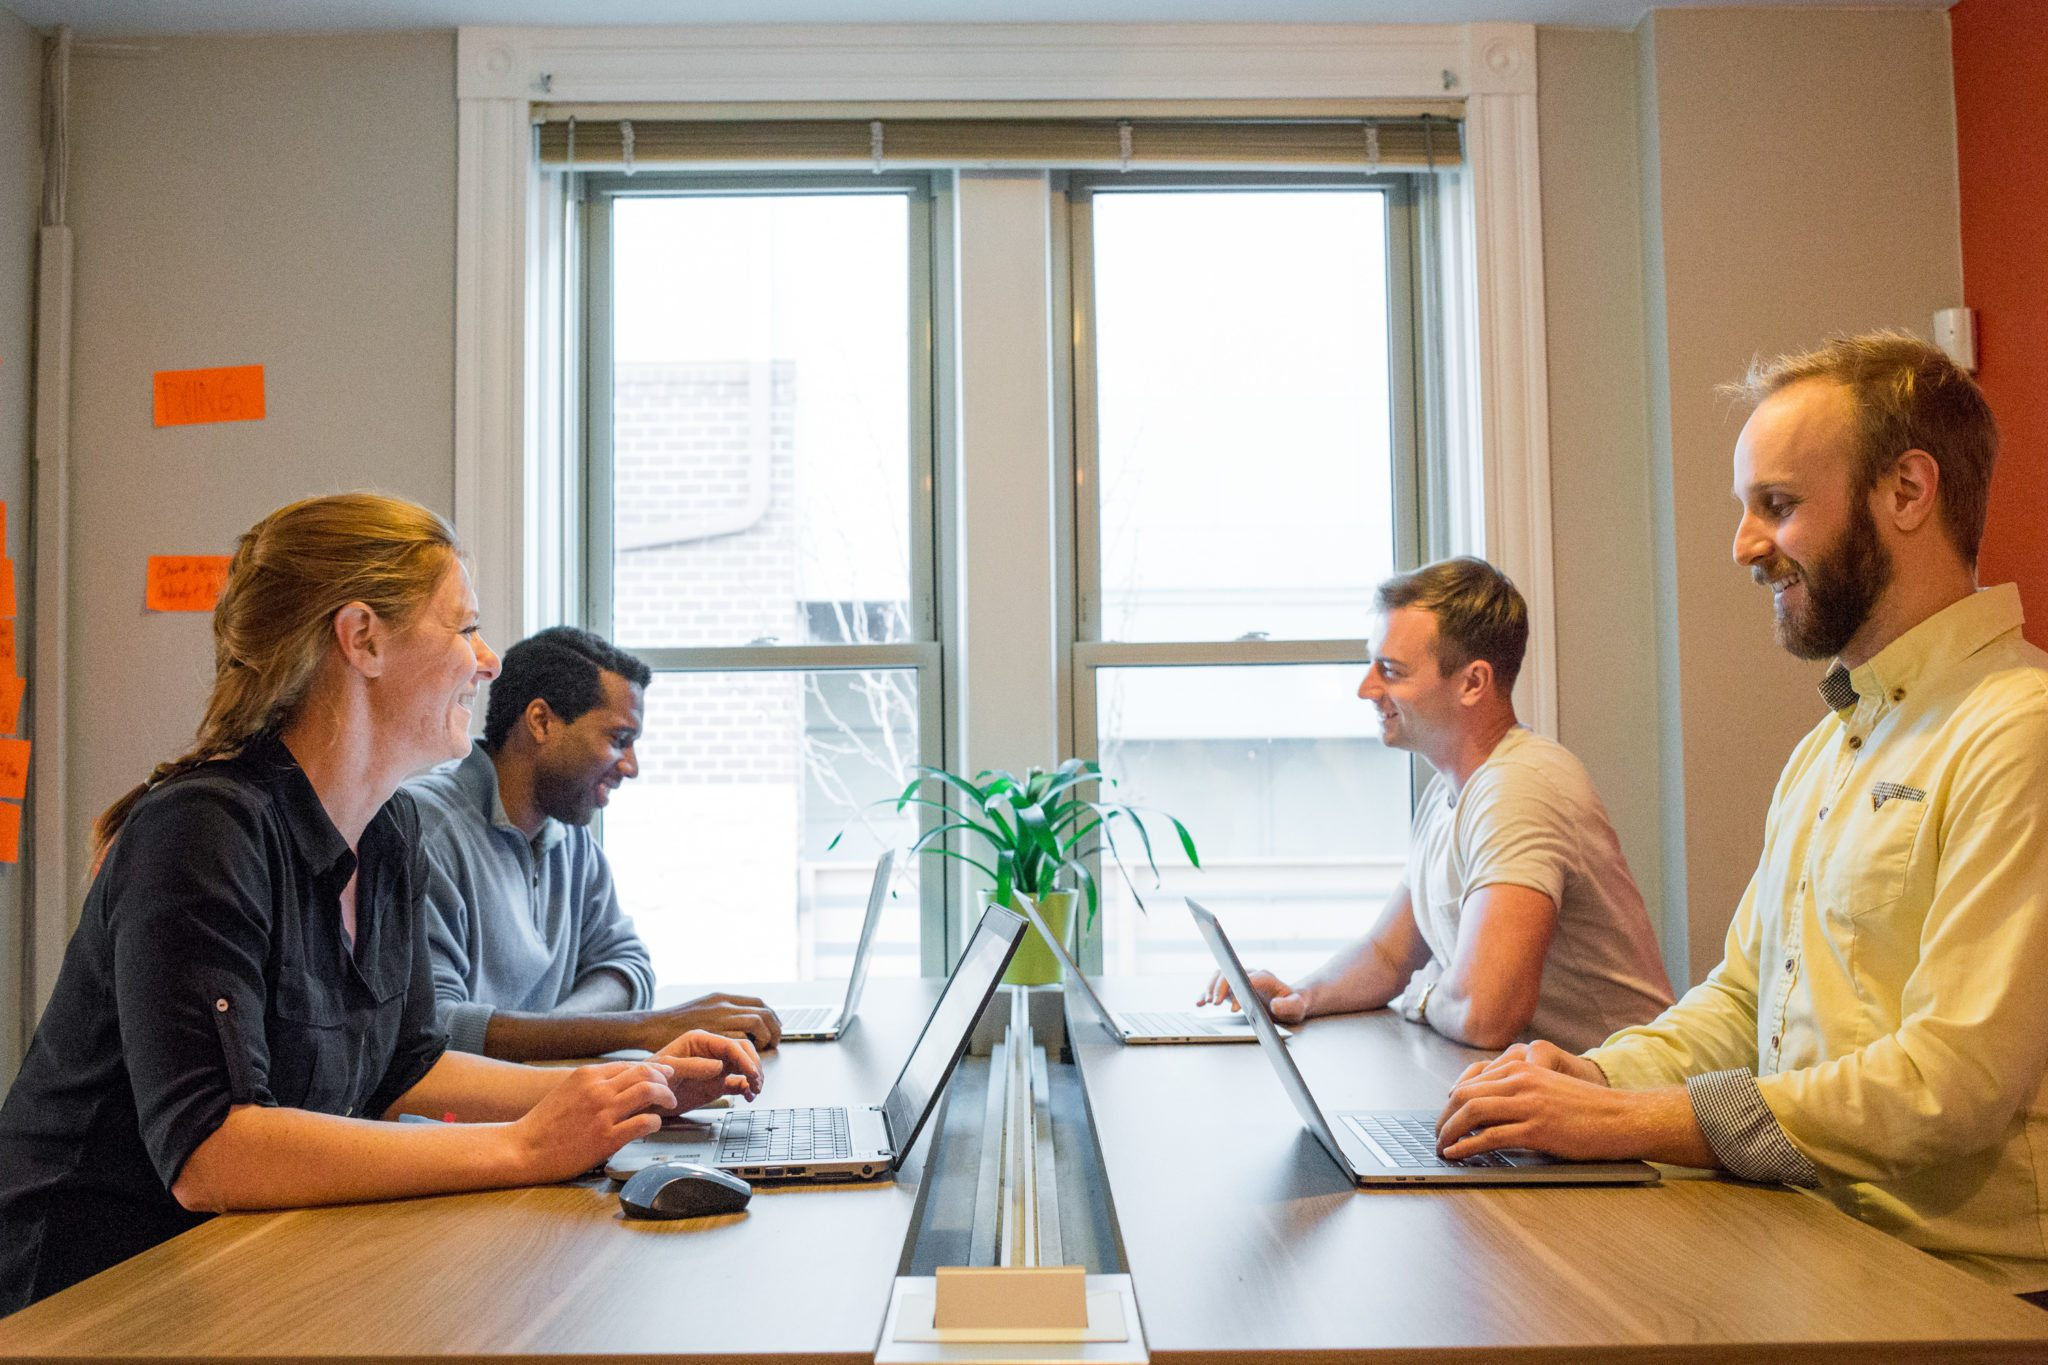 Remote workers and freelancers coworking in the loud side